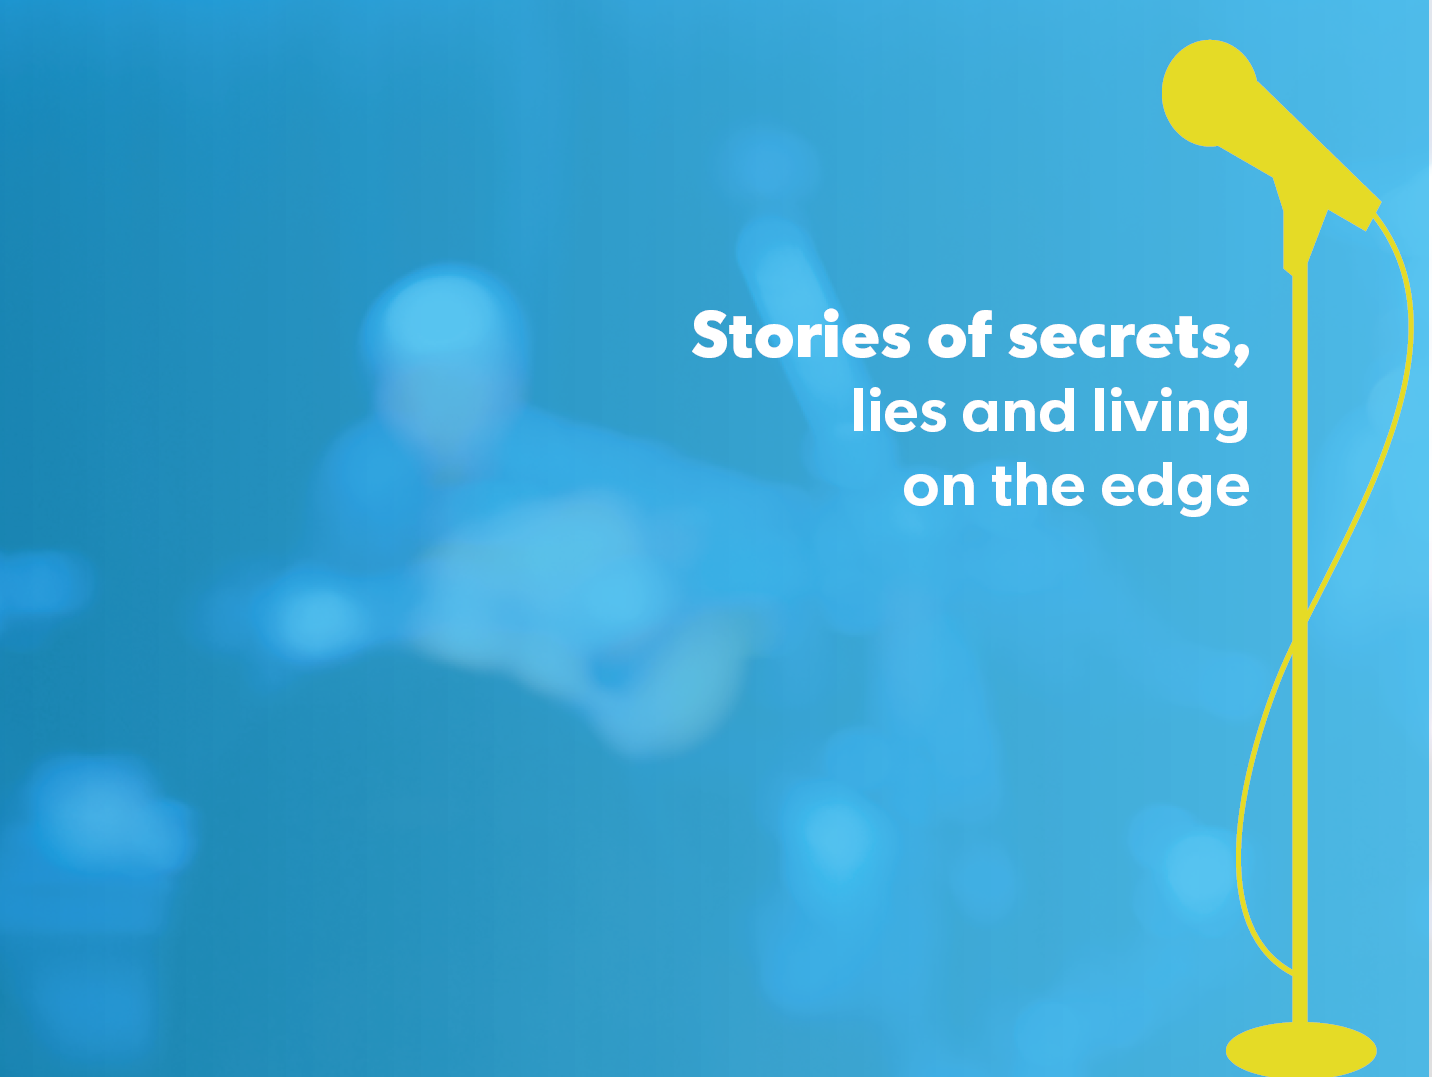 Stories of secrets, lies and living on the edge. Insiders, unlock your 20% ticket discount.